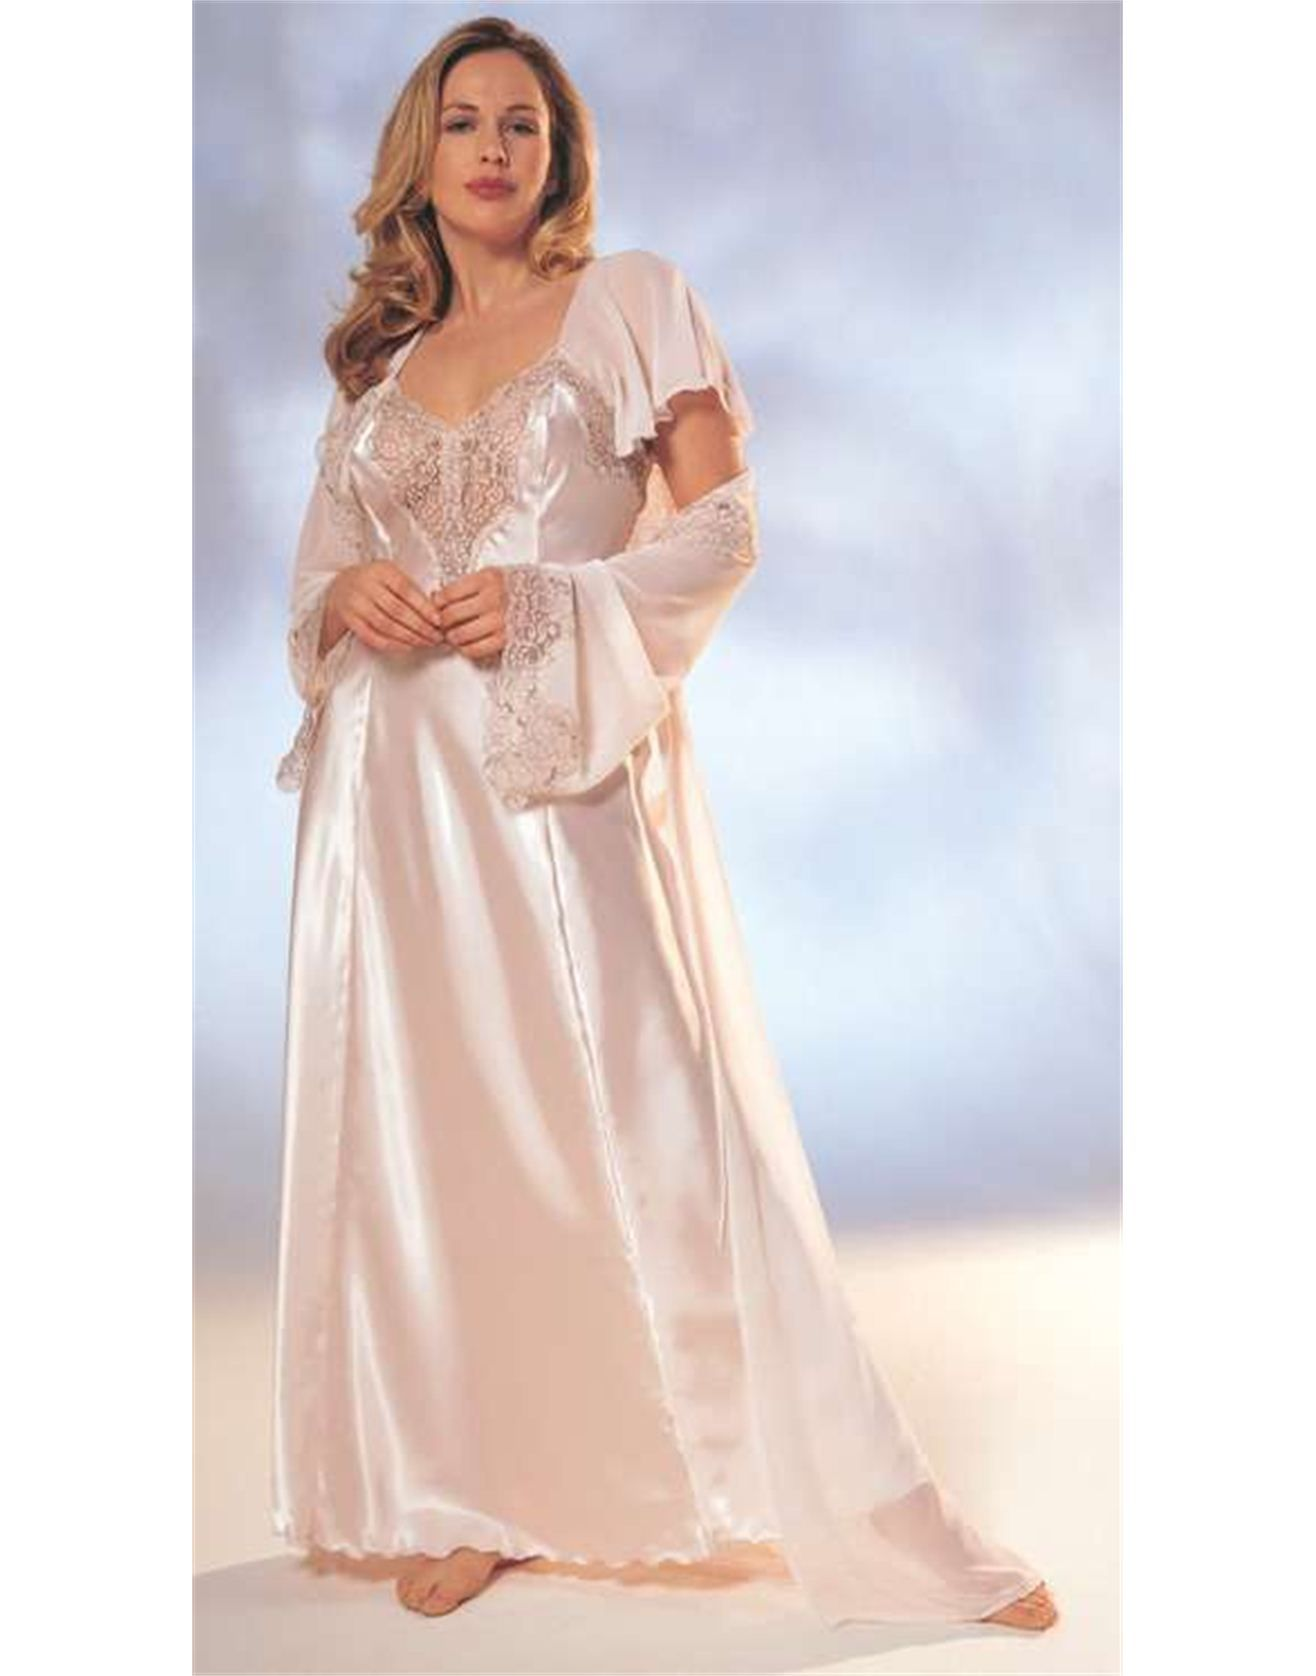 Find night gown dresses at ShopStyle. Shop the latest collection of night gown dresses from the most popular stores - all in one place.